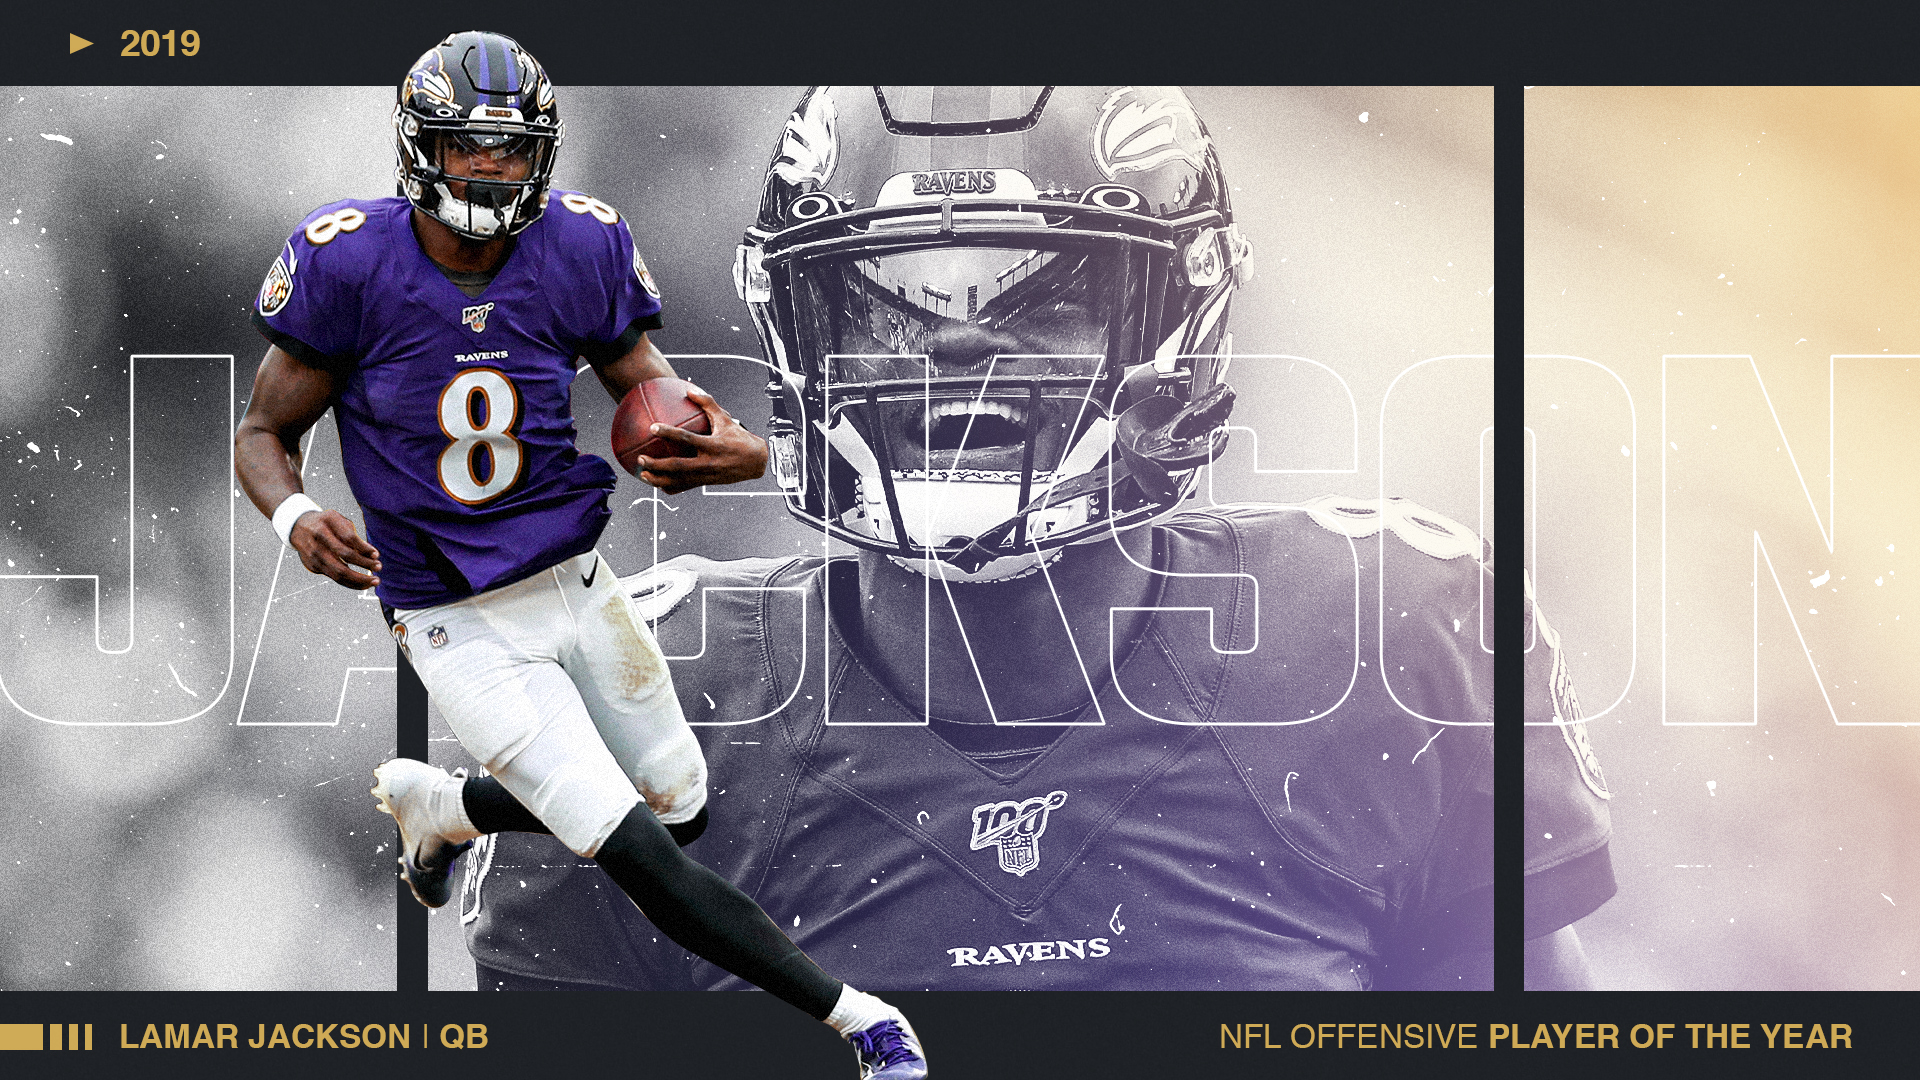 Lamar Jackson dominates voting for Sporting News NFL Offensive Player of the Year in 2019